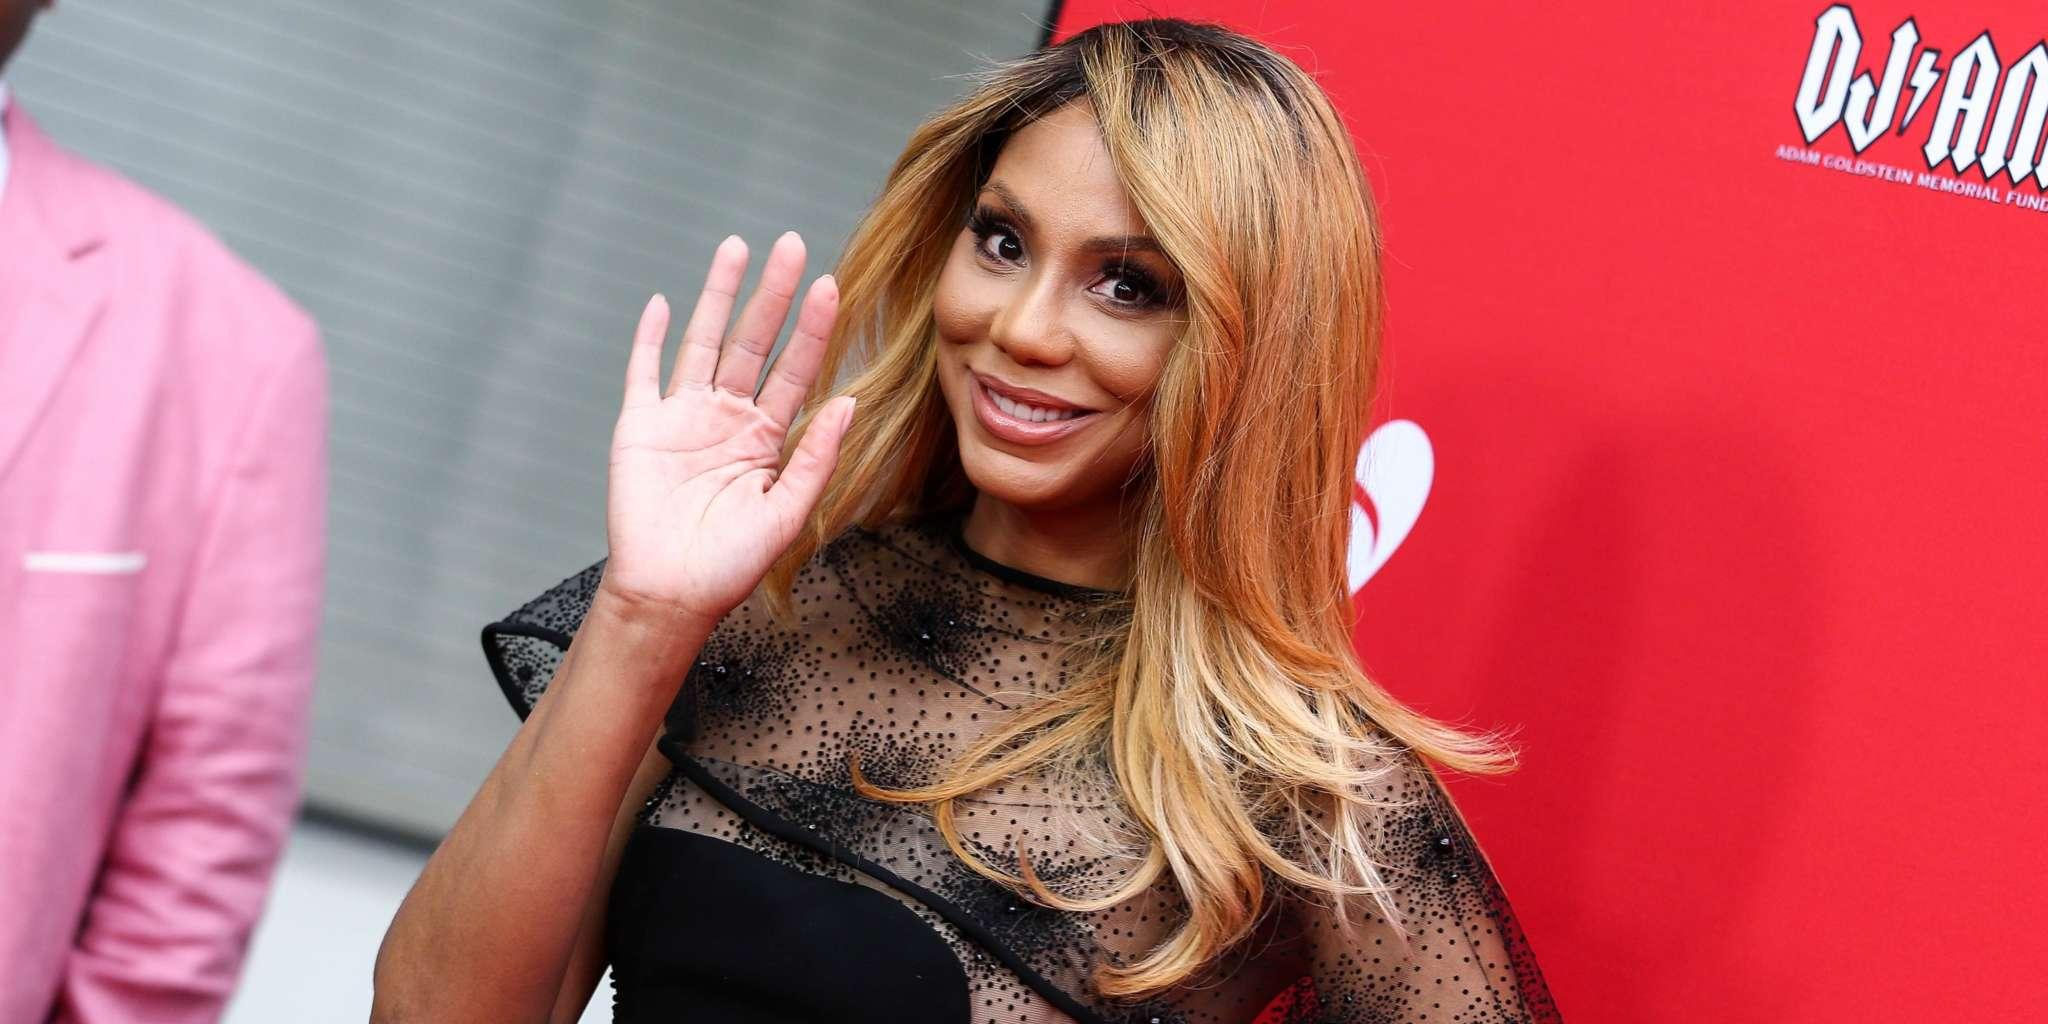 Tamar Braxton Makes Fans Happy With New Posts For Her Birthday – Check Them Out Here